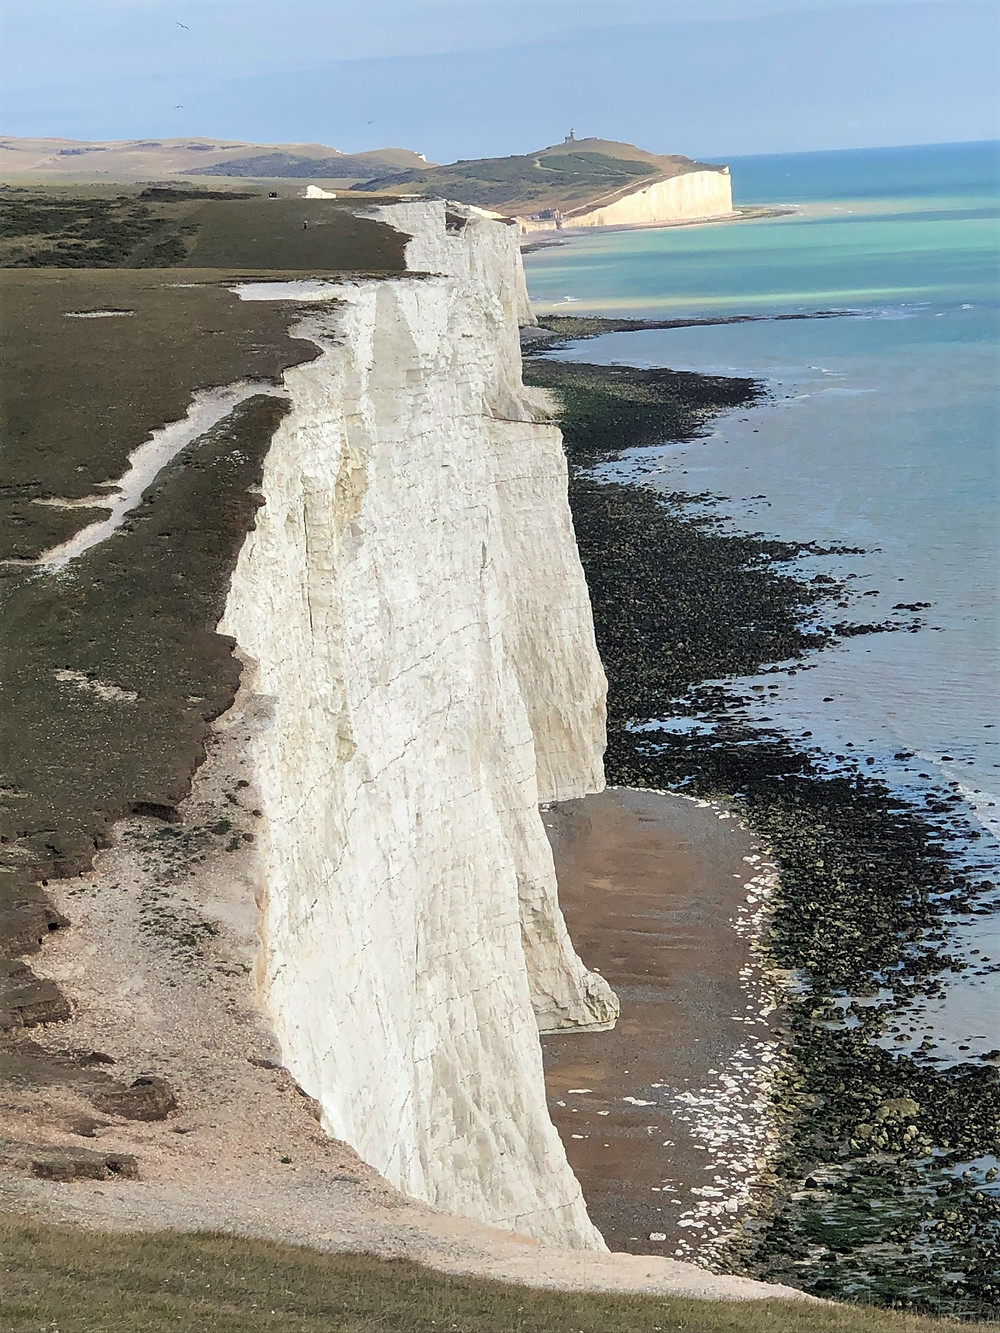 A view of Short Brow and Rough Brow from the top of Haven Brow one of the Seven Sisters Cliffs in England